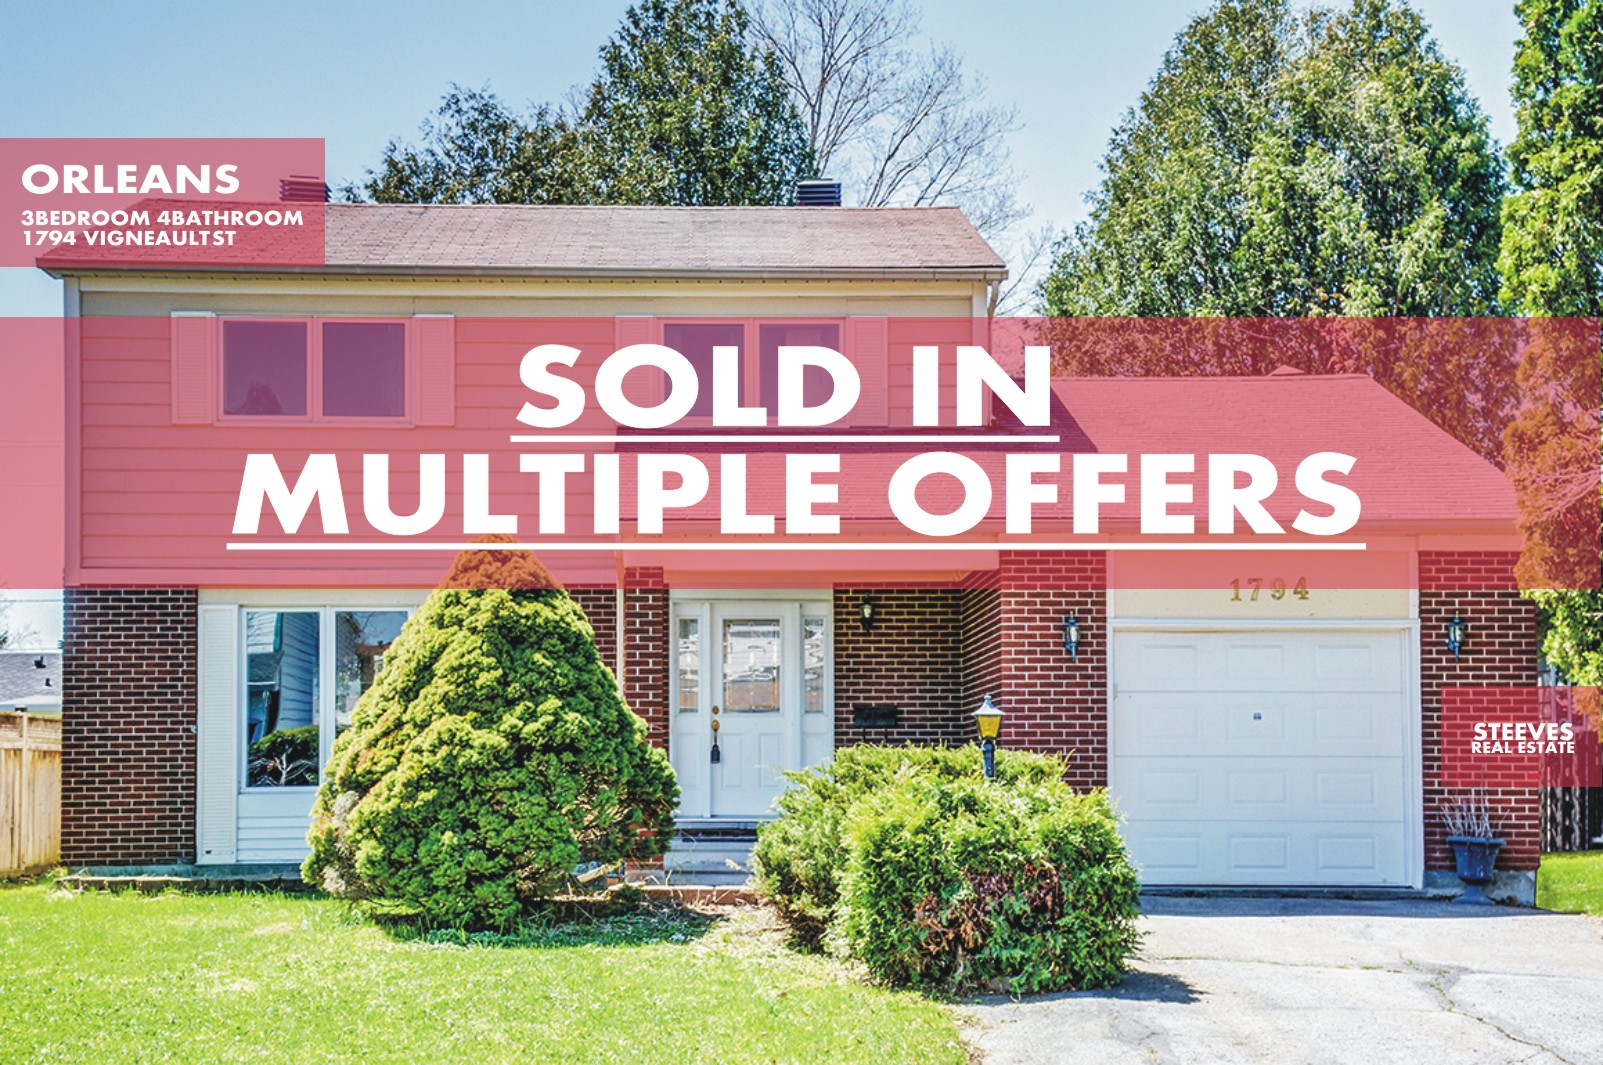 **SOLD**  -1794 VIGNEAULT ST – ORLEANS DETACHED HOME